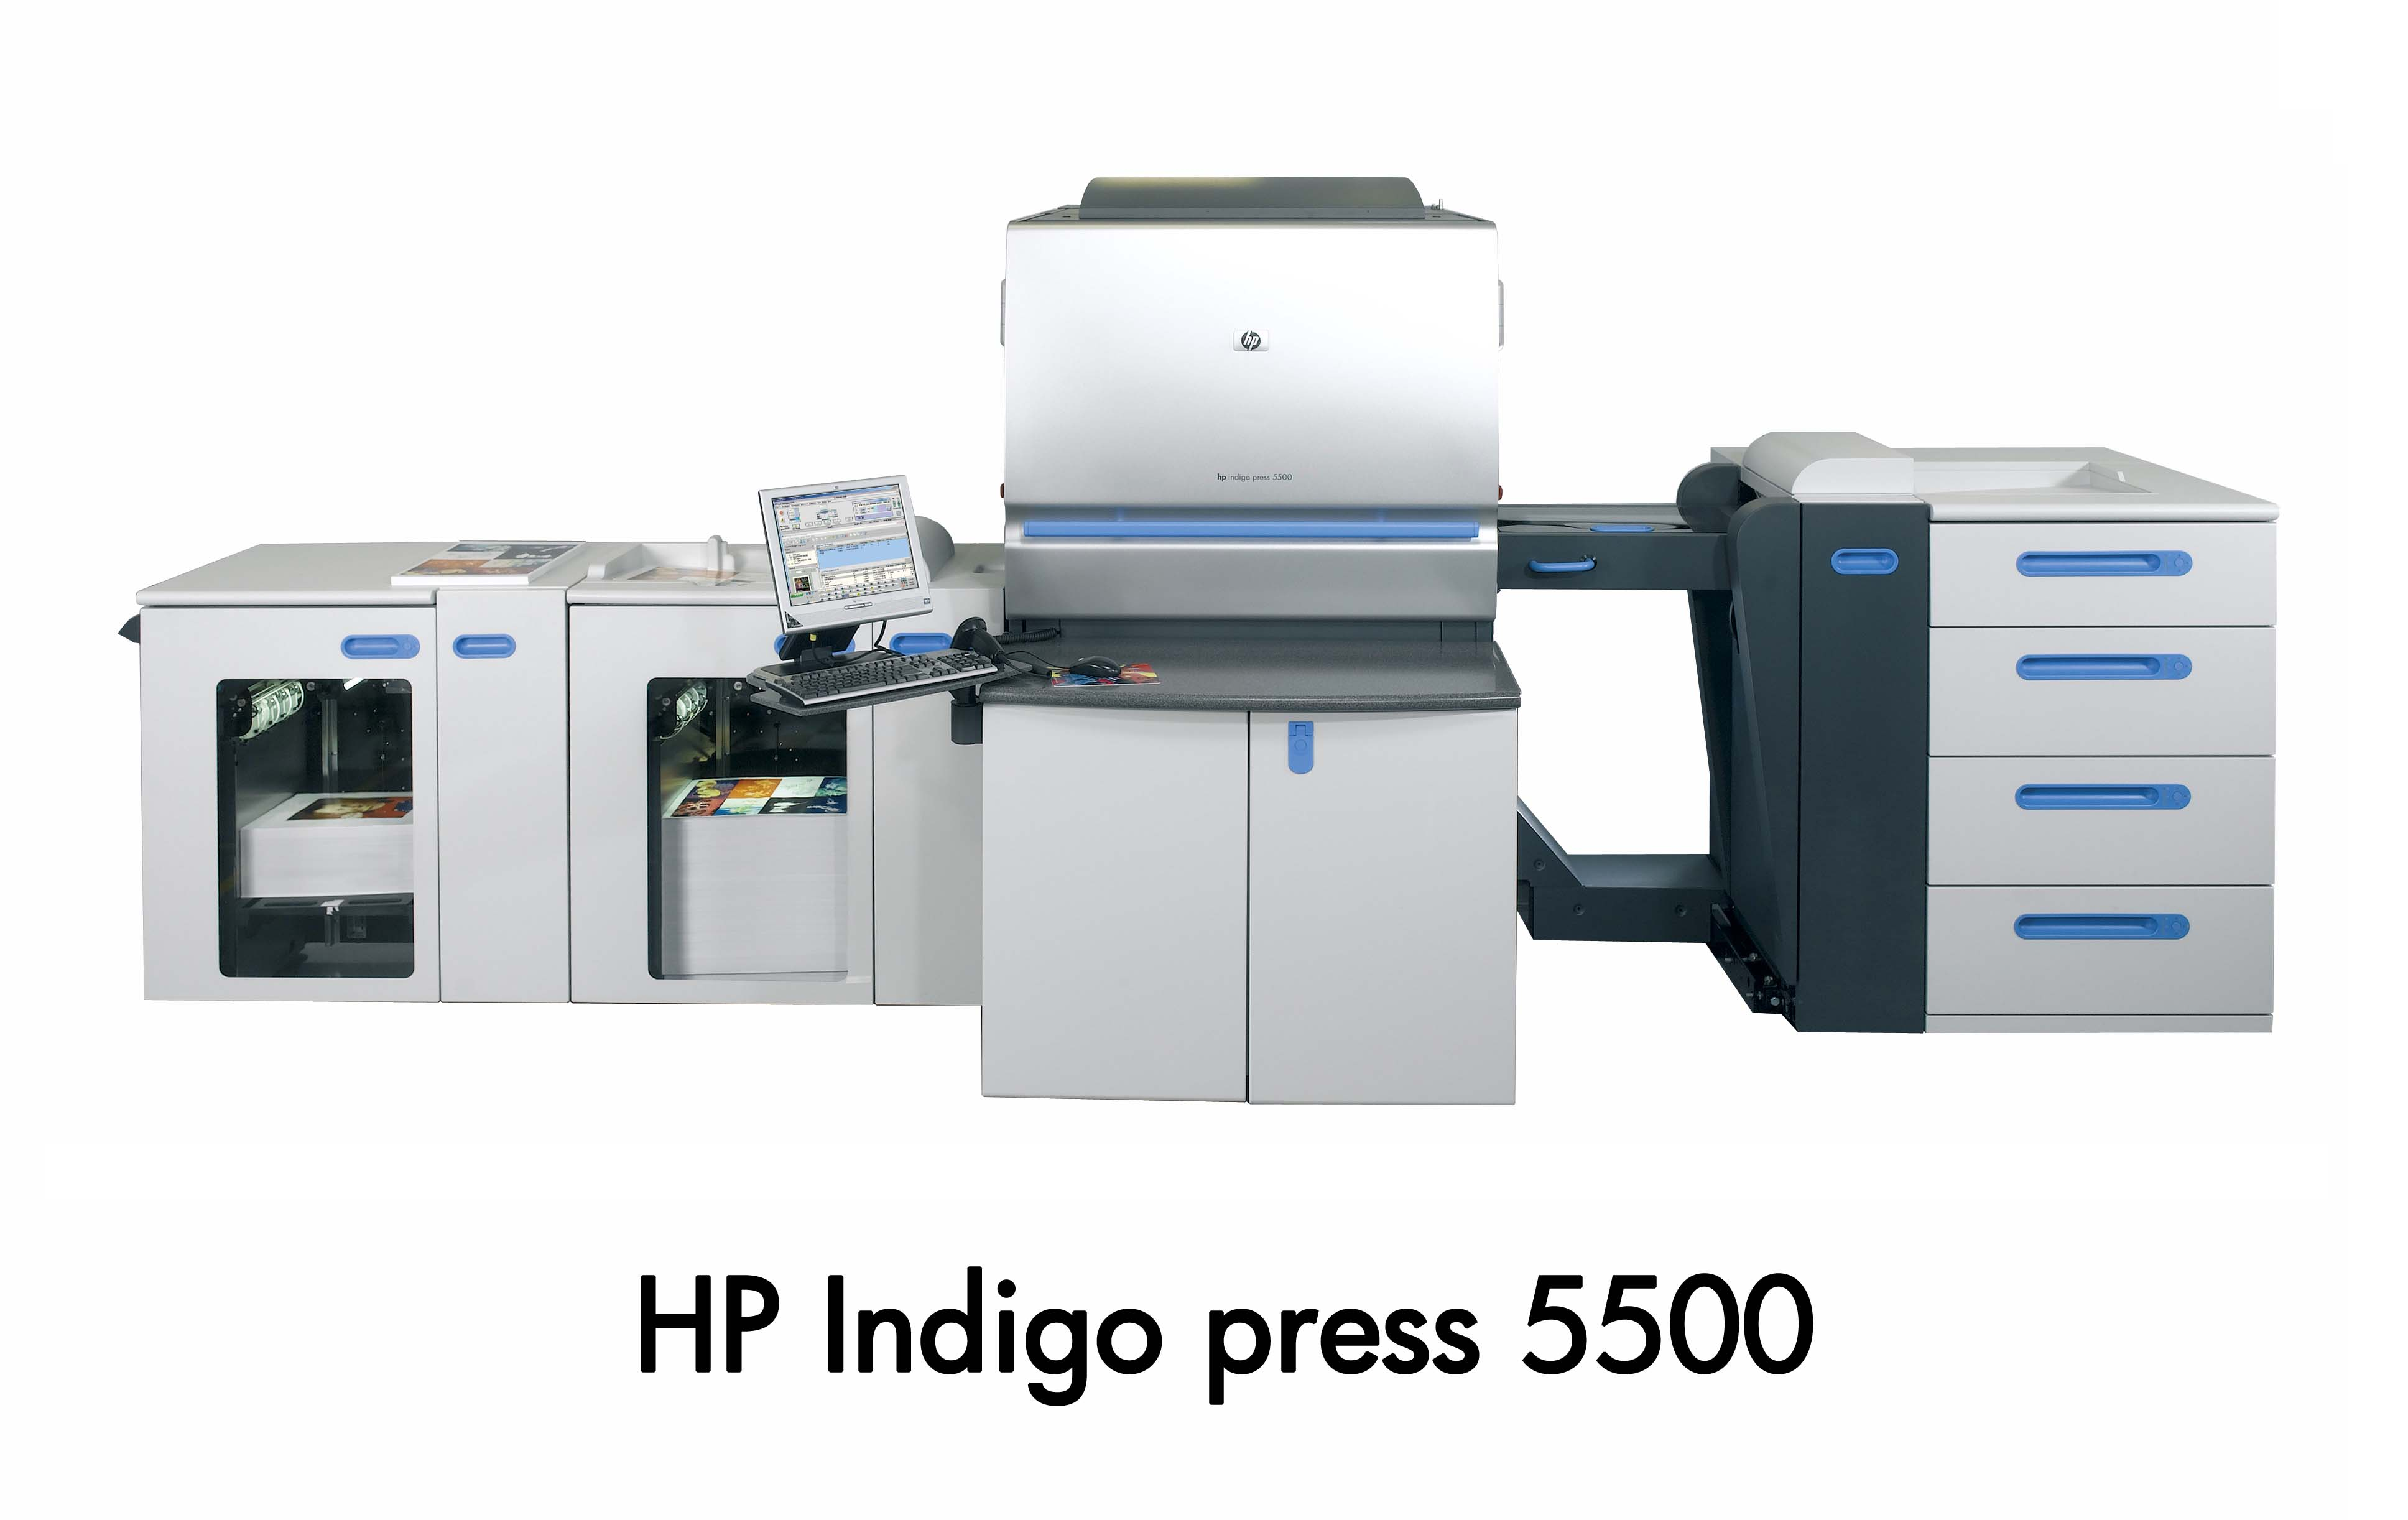 Indigo 5500 Digital Press